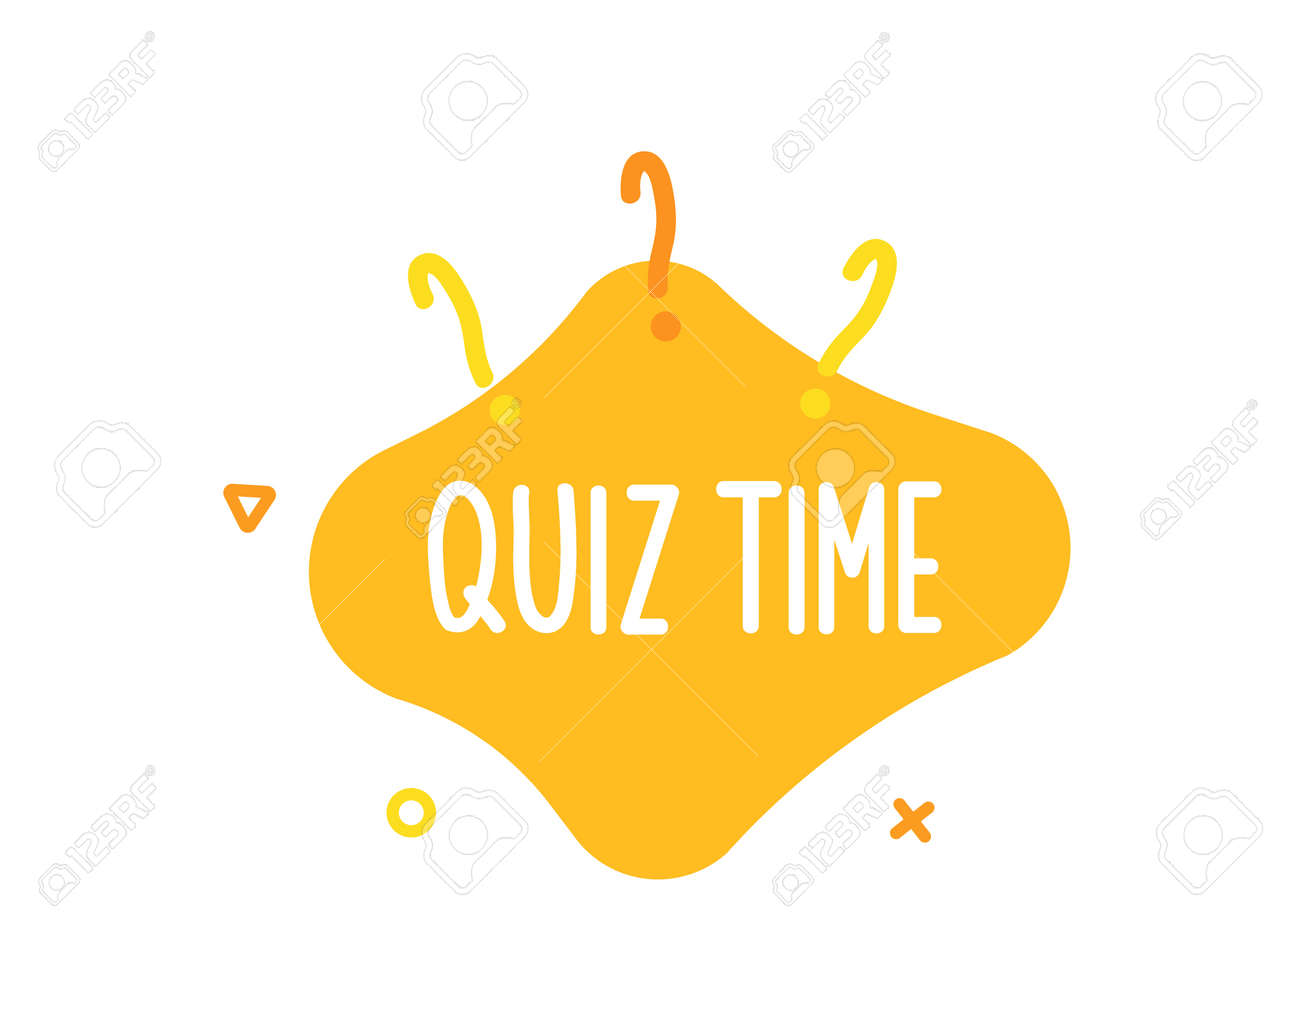 Quiz time text on liquid shape with question marks and geometric outline figures. Vector graphic design template for quiz question games, questionnaires, education, pub and bar events, online games, social media, business and marketing events - 158456541